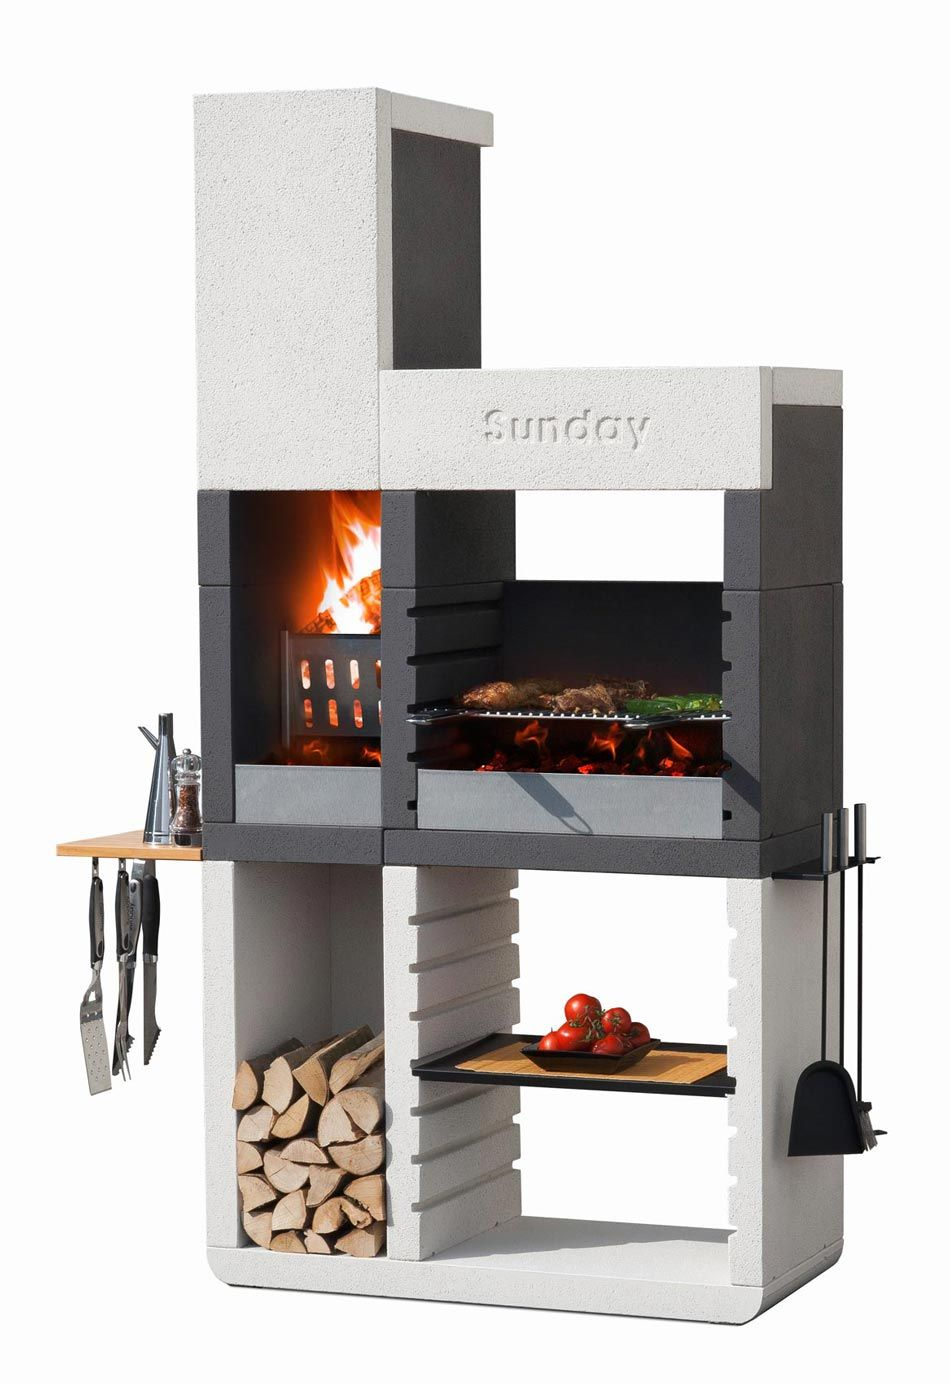 grillkamin sunday® one tower in 2018 | furra | pinterest | outdoor